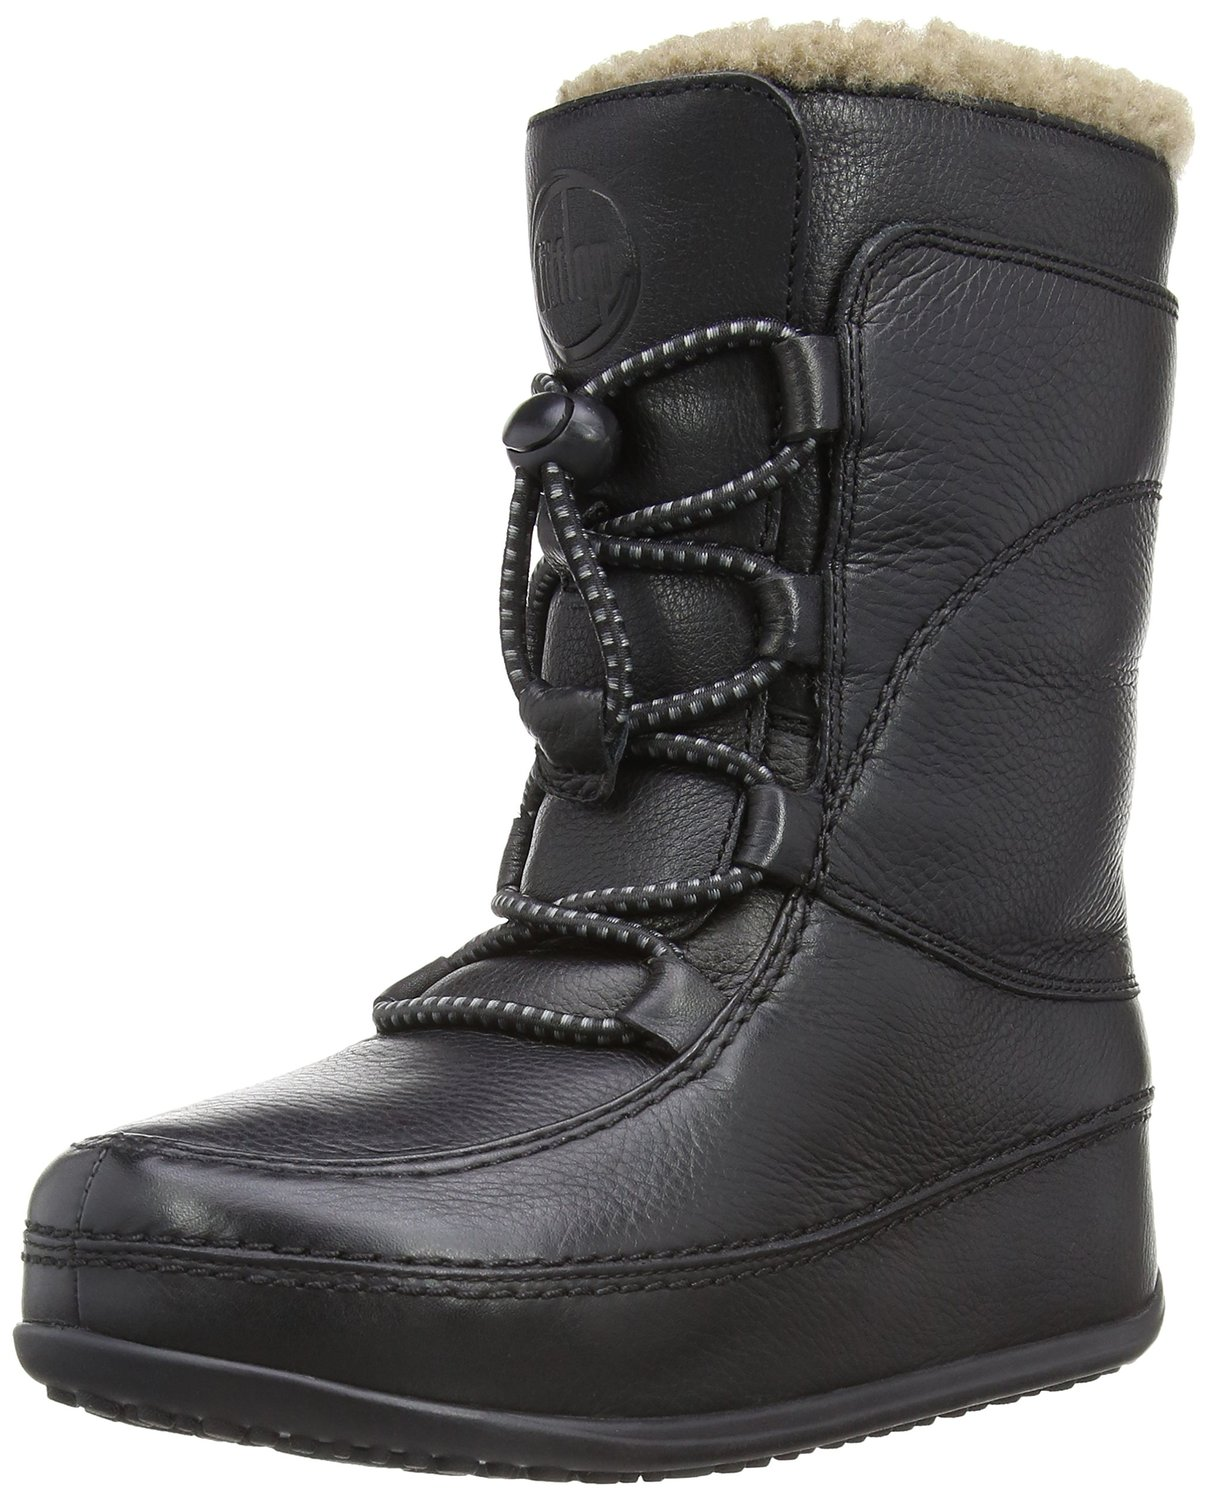 a59938dd018 FitFlop Mukluk Moc Lace Up Leather Boot all black